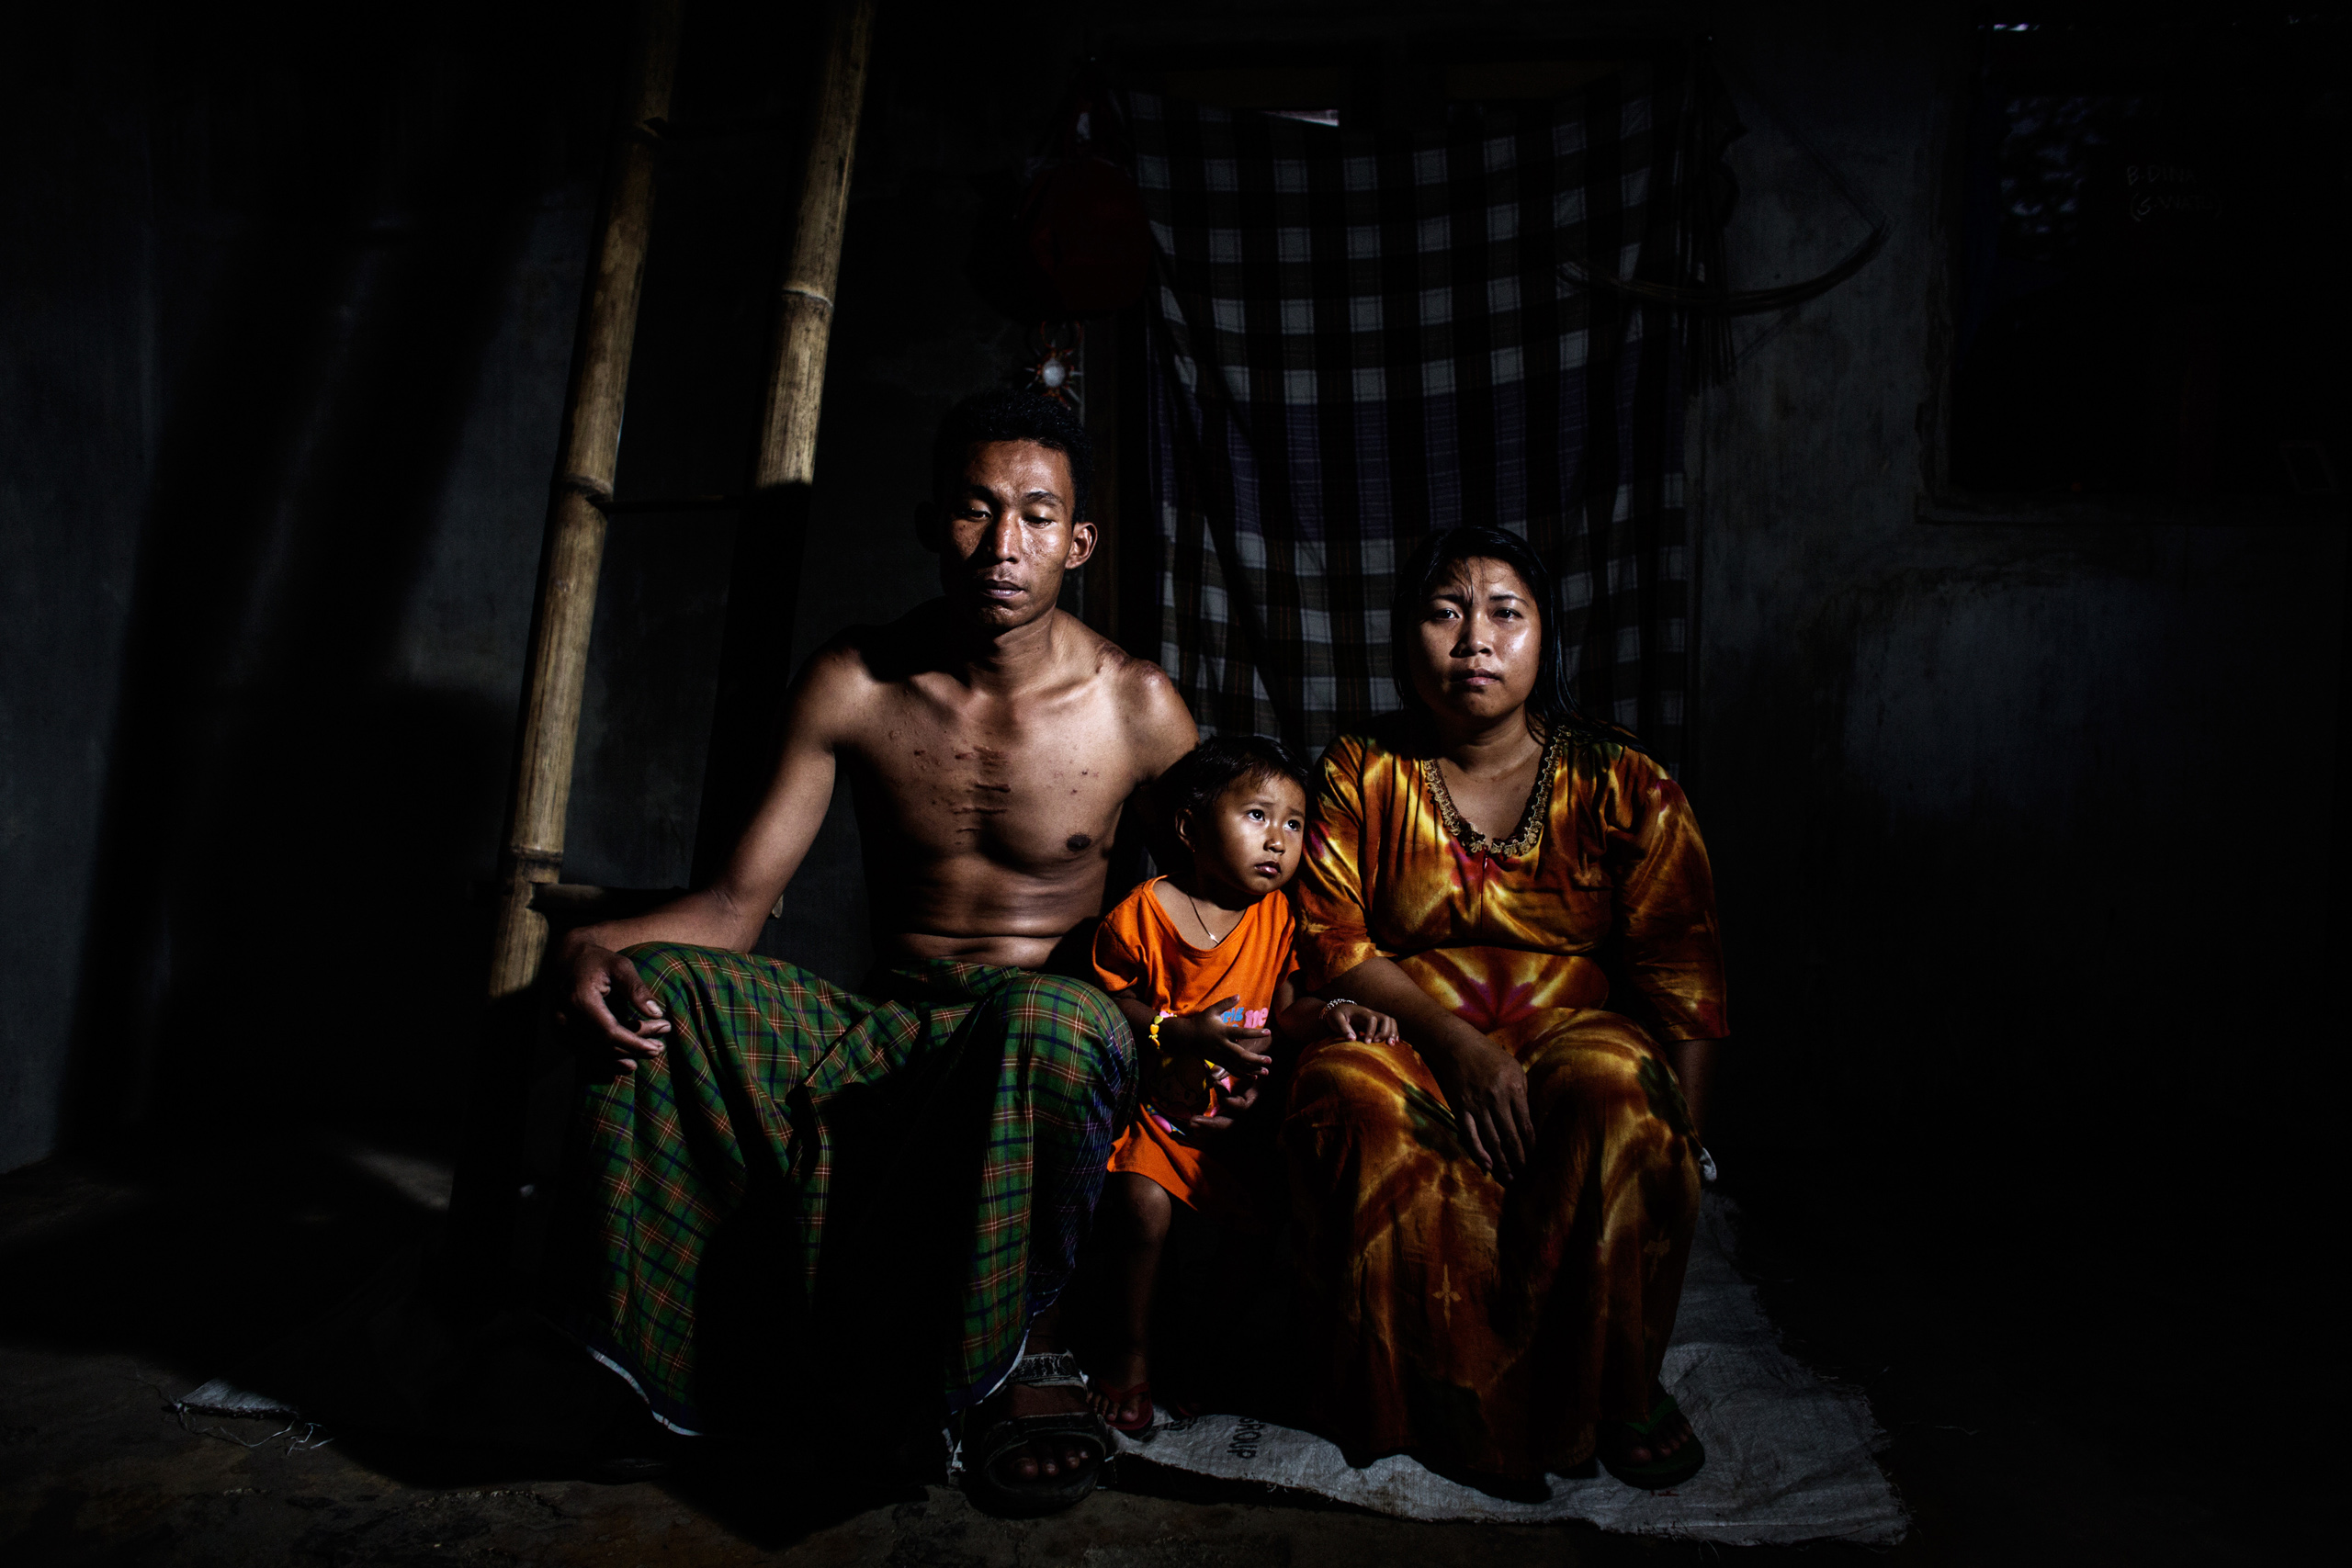 Suwono, 33, with his wife Isniyab and son Reny. He has been working with sulfur for nine years. Oct. 30, 2014.